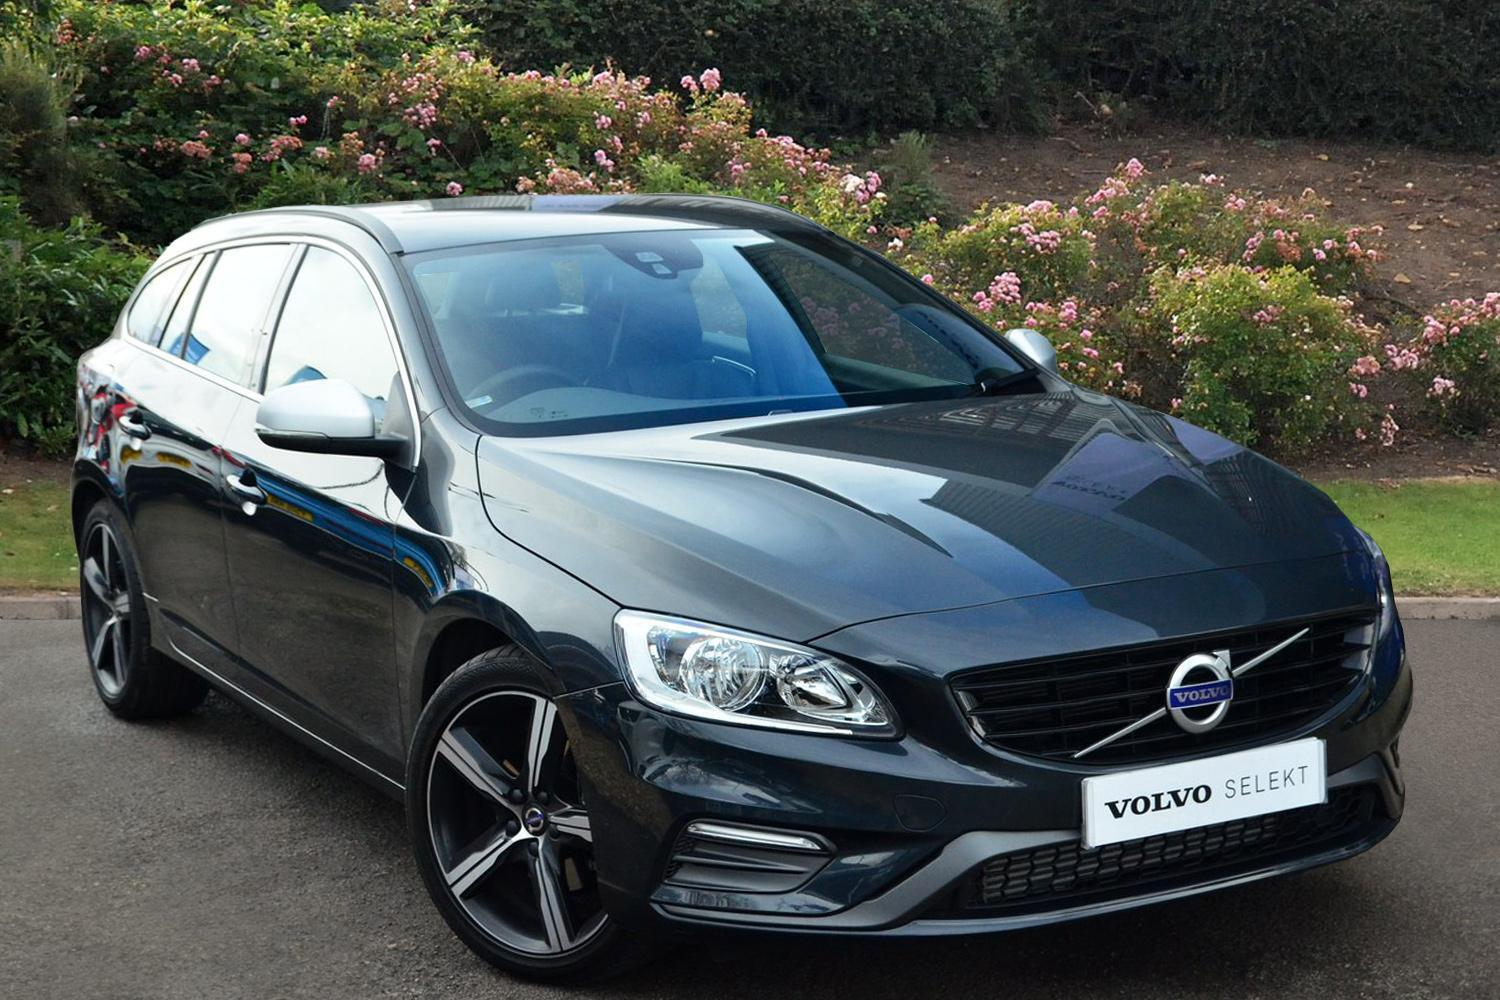 used volvo v60 d4 190 r design nav 5dr geartronic diesel estate for sale bristol street motors. Black Bedroom Furniture Sets. Home Design Ideas